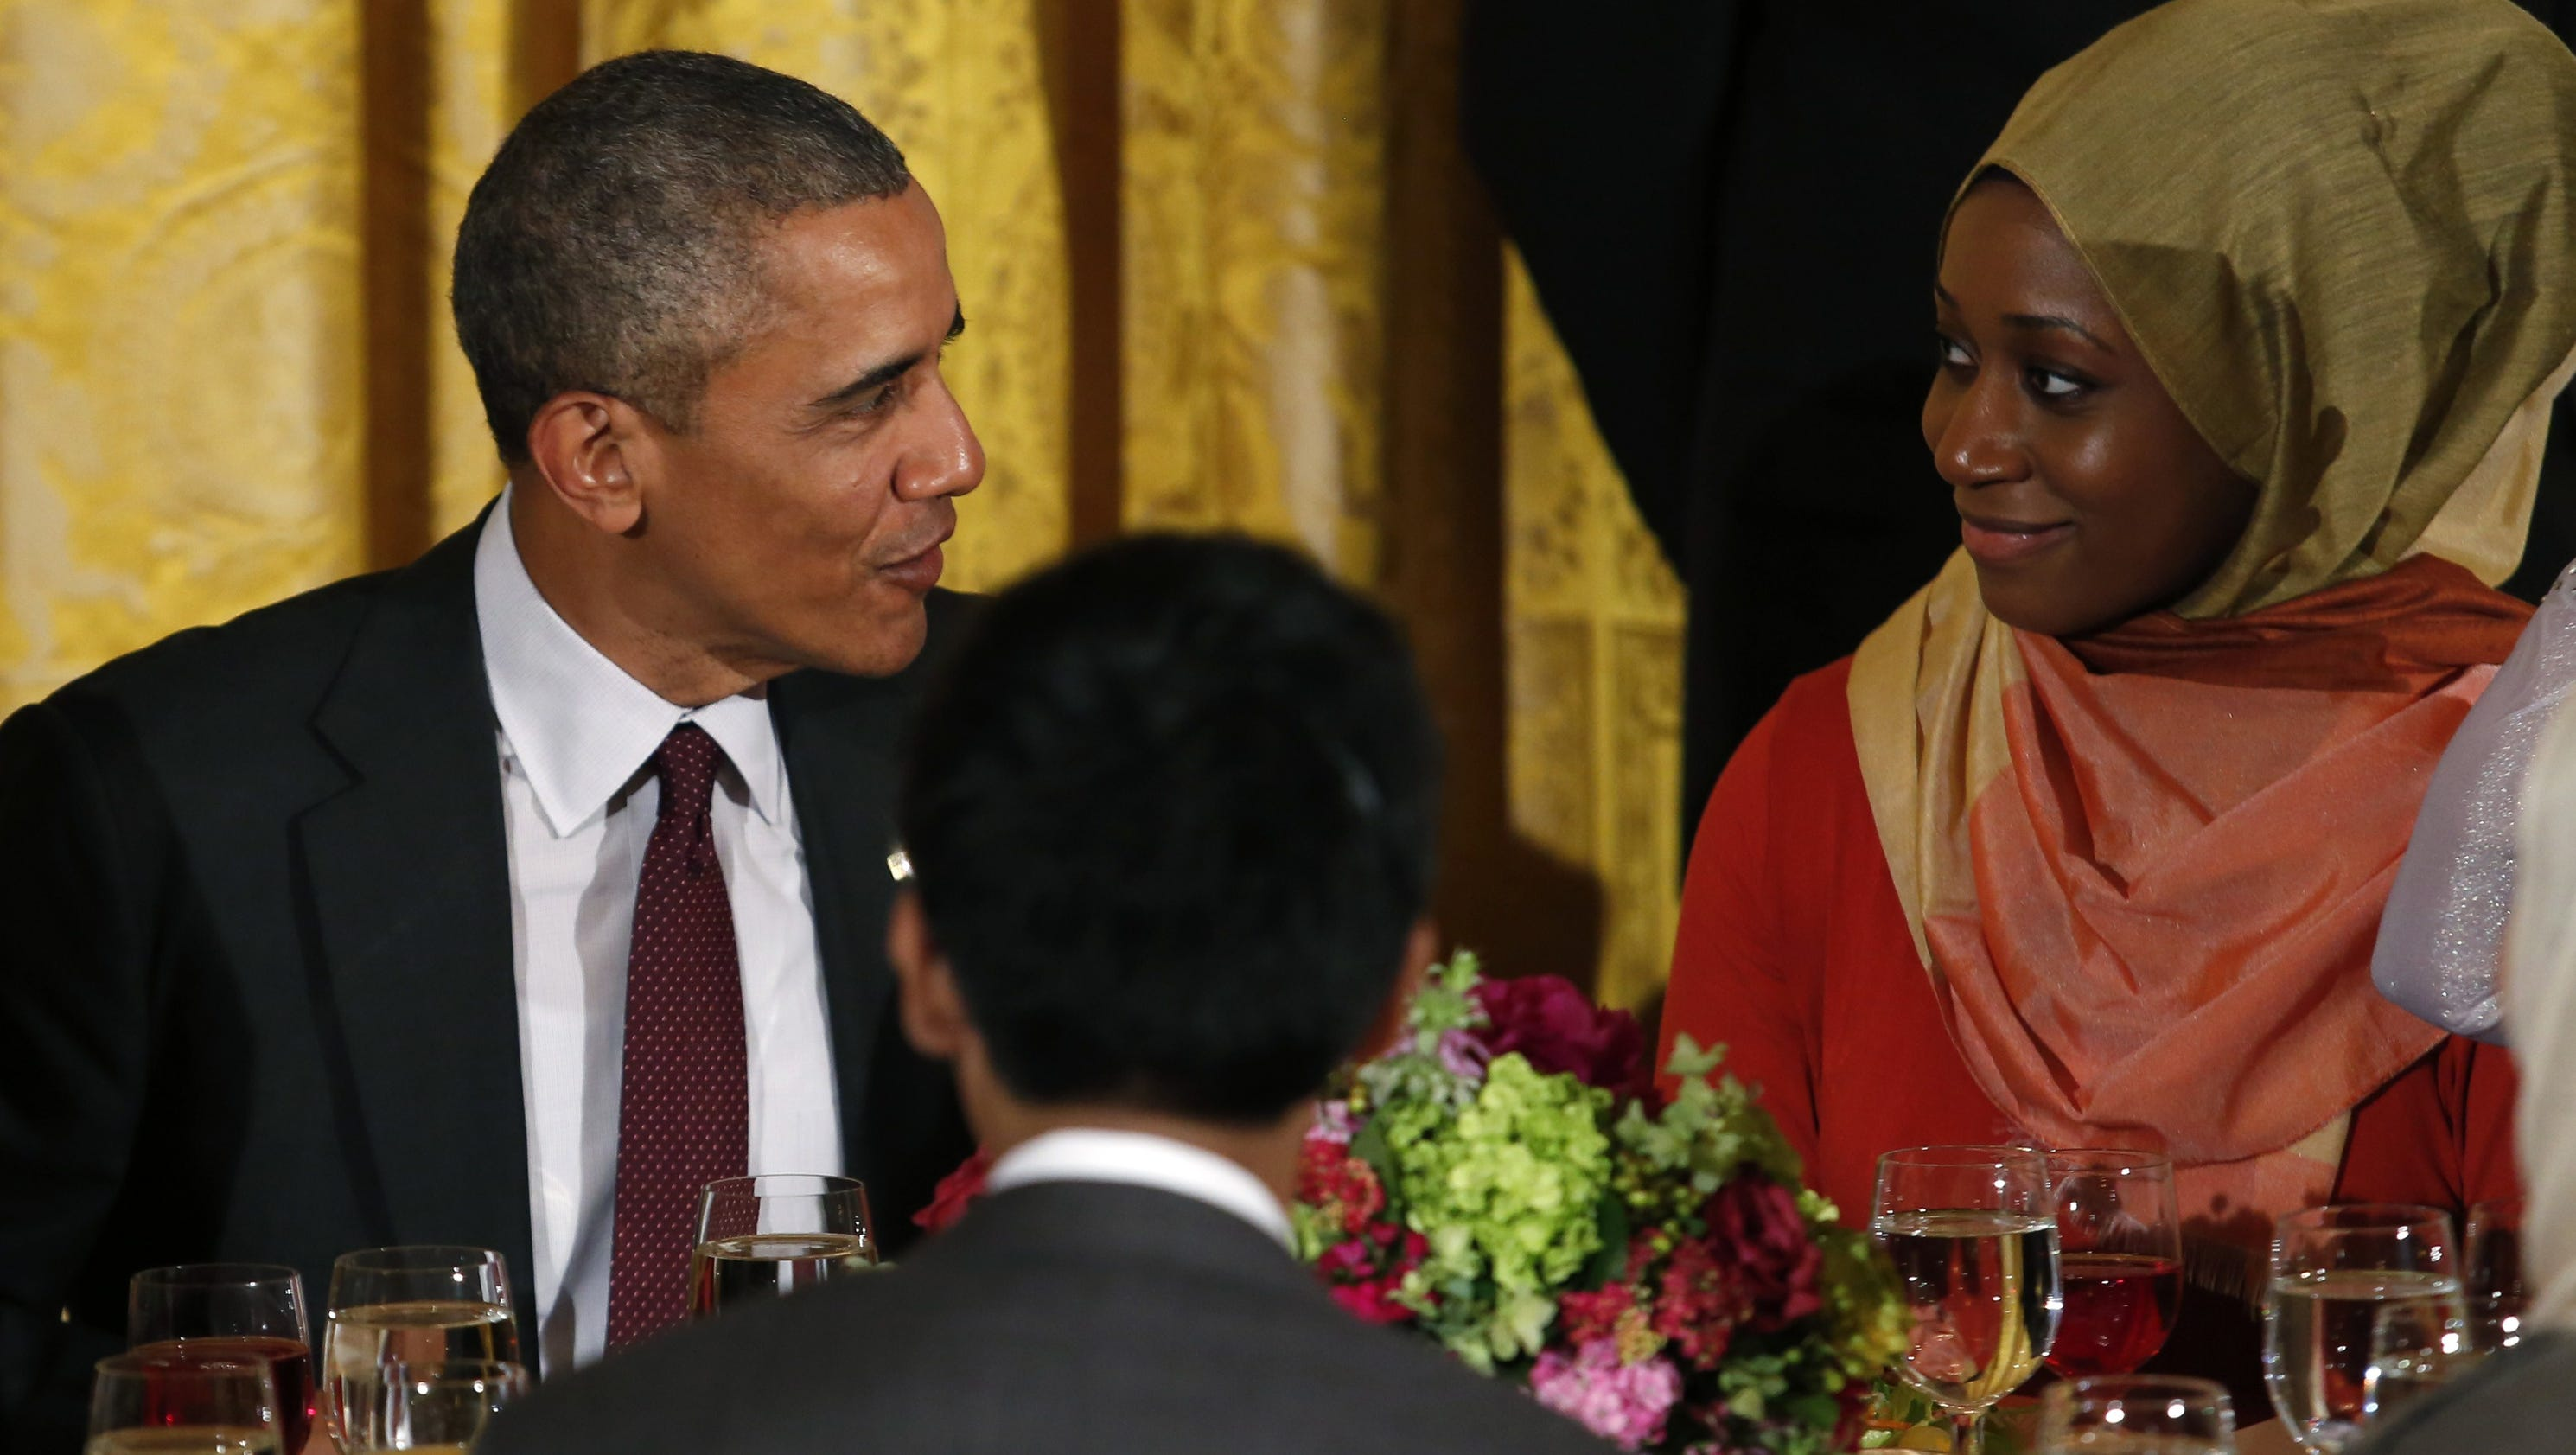 Obama Too Many Have Distorted Views Of Muslims